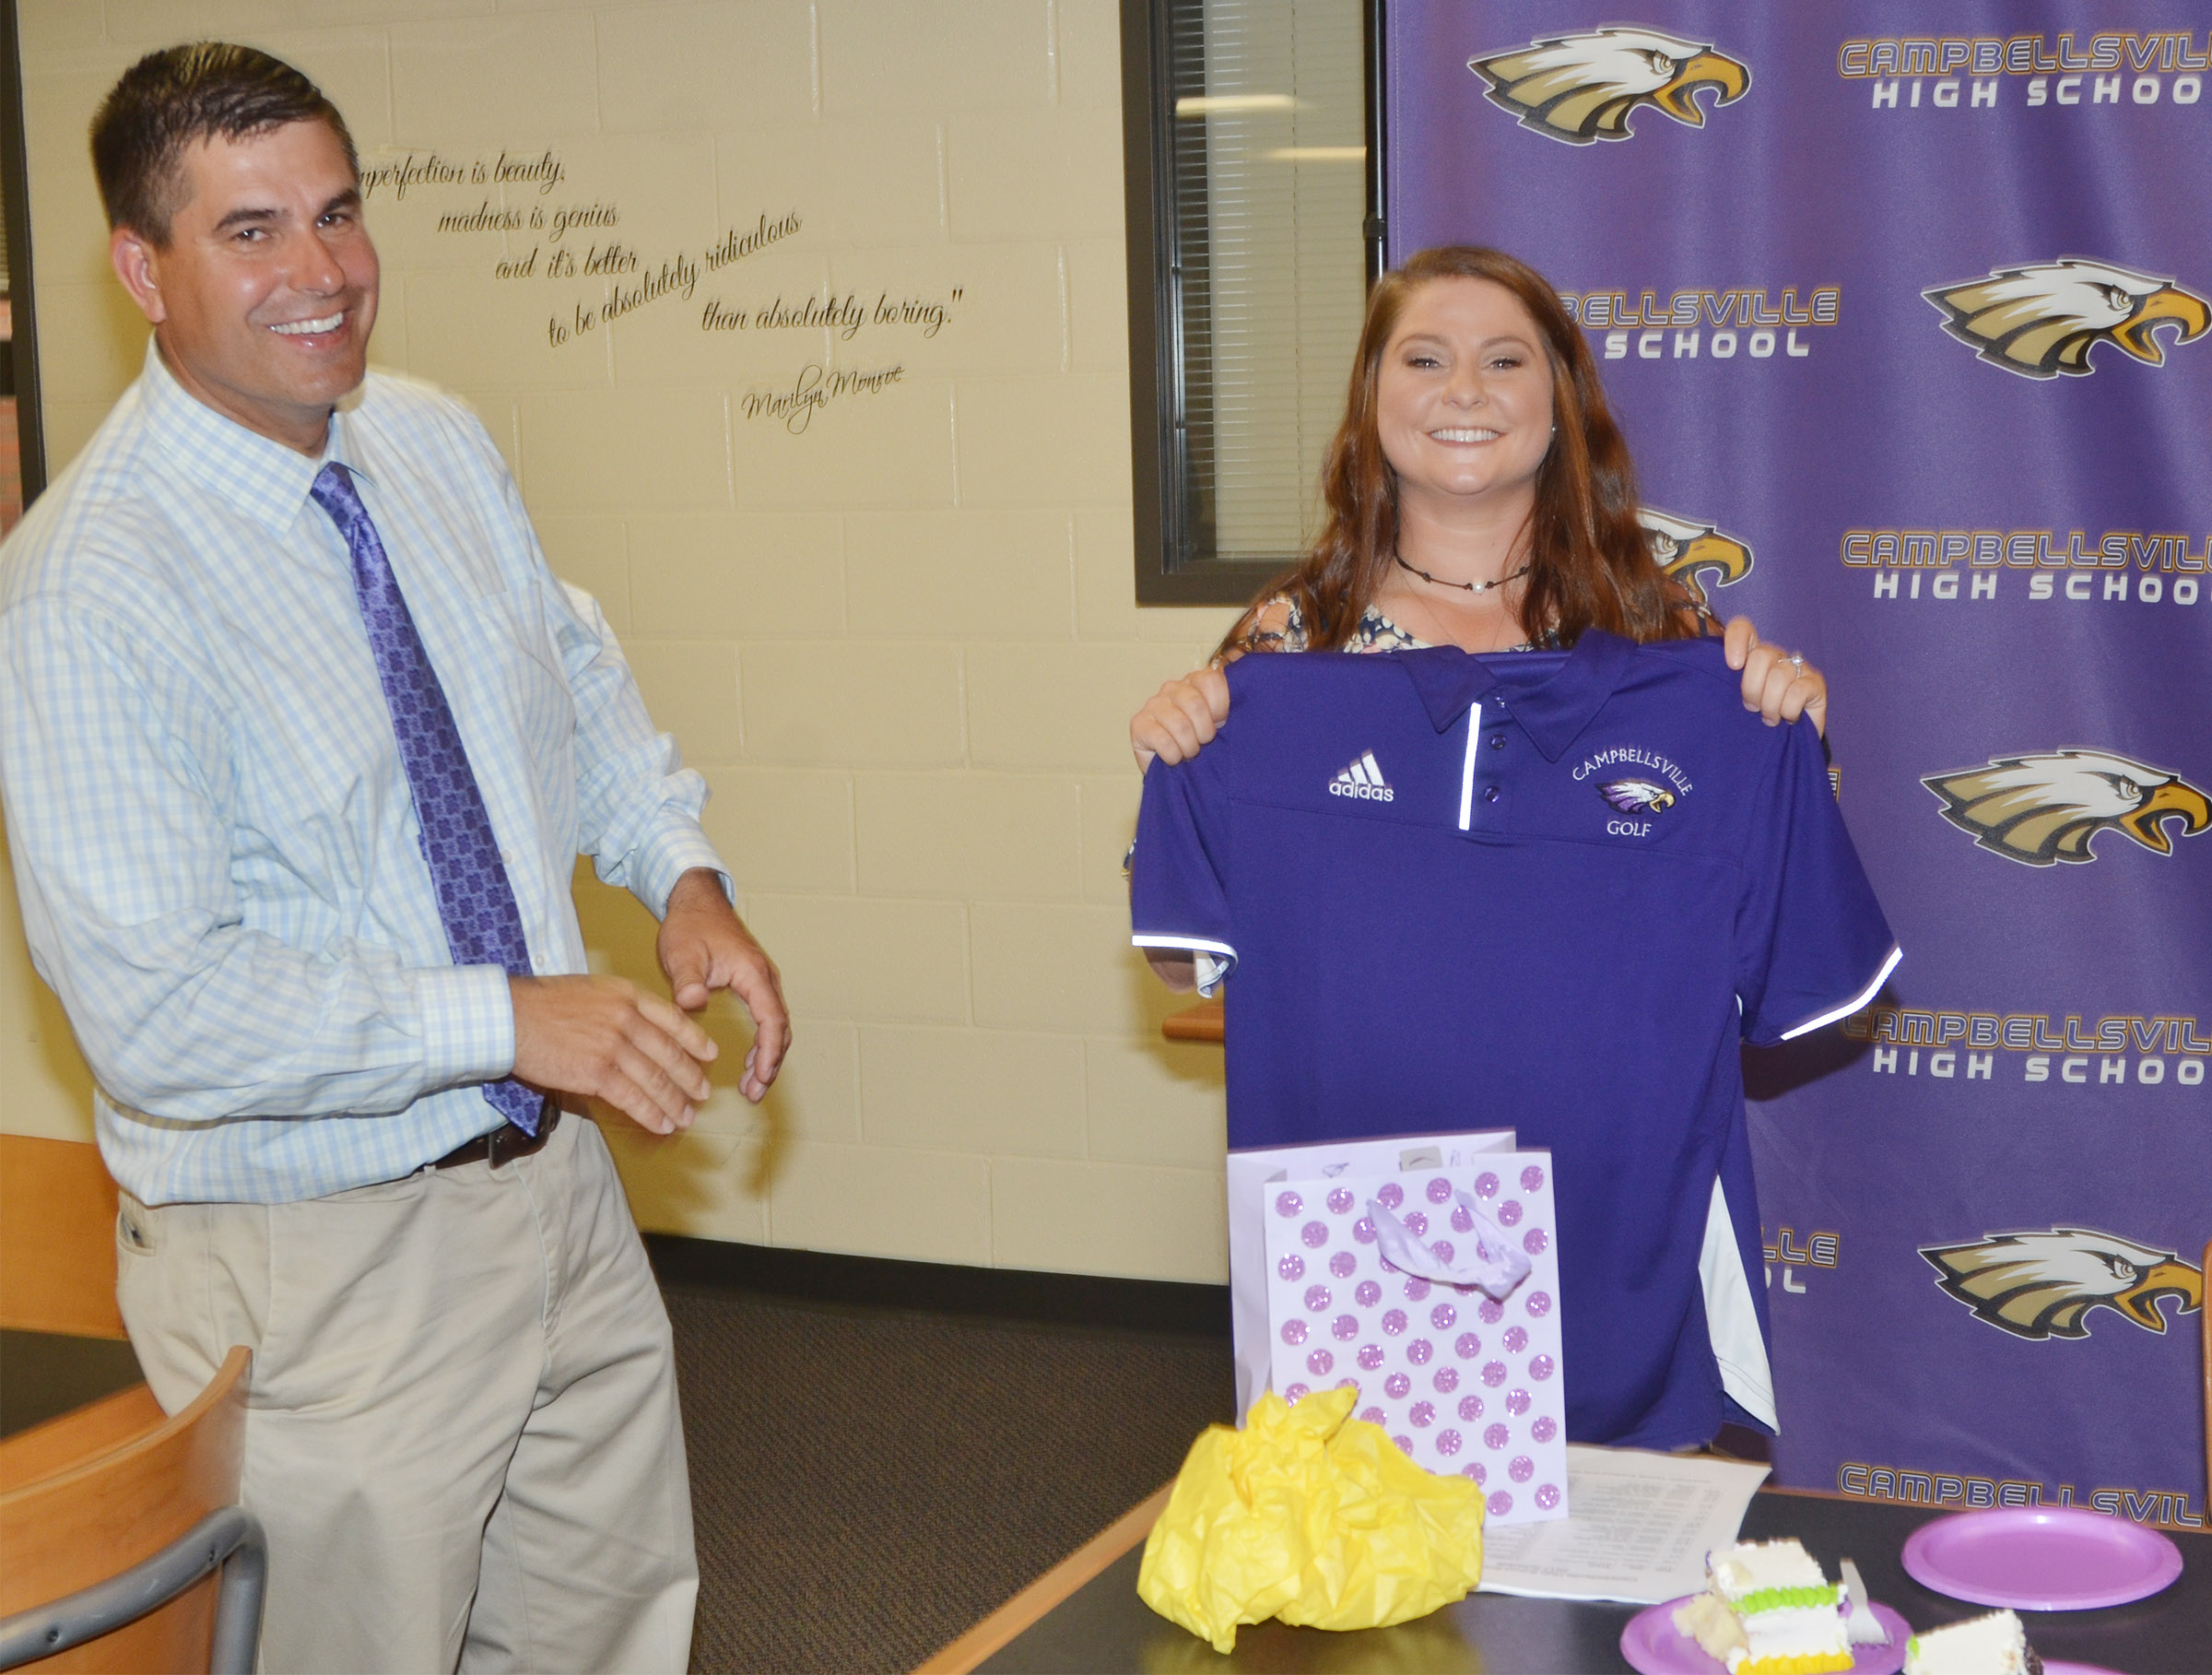 CHS Principal Kirby Smith presents Cassidy Scantland with her first CHS golf shirt.